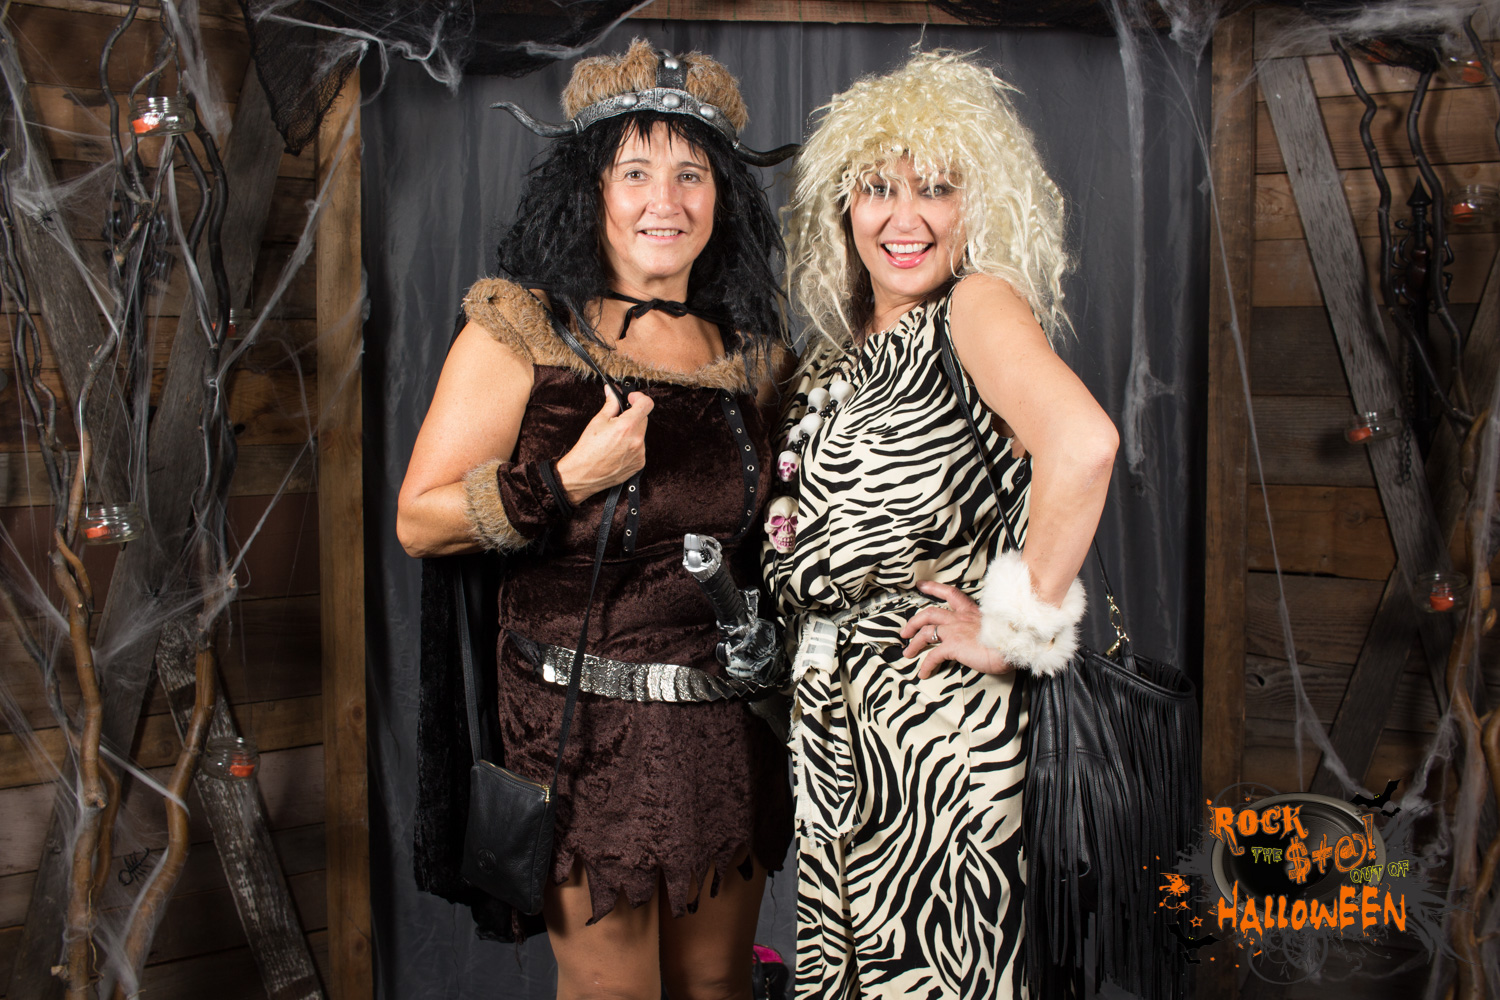 Halloween-PhotoBooth-028-6755